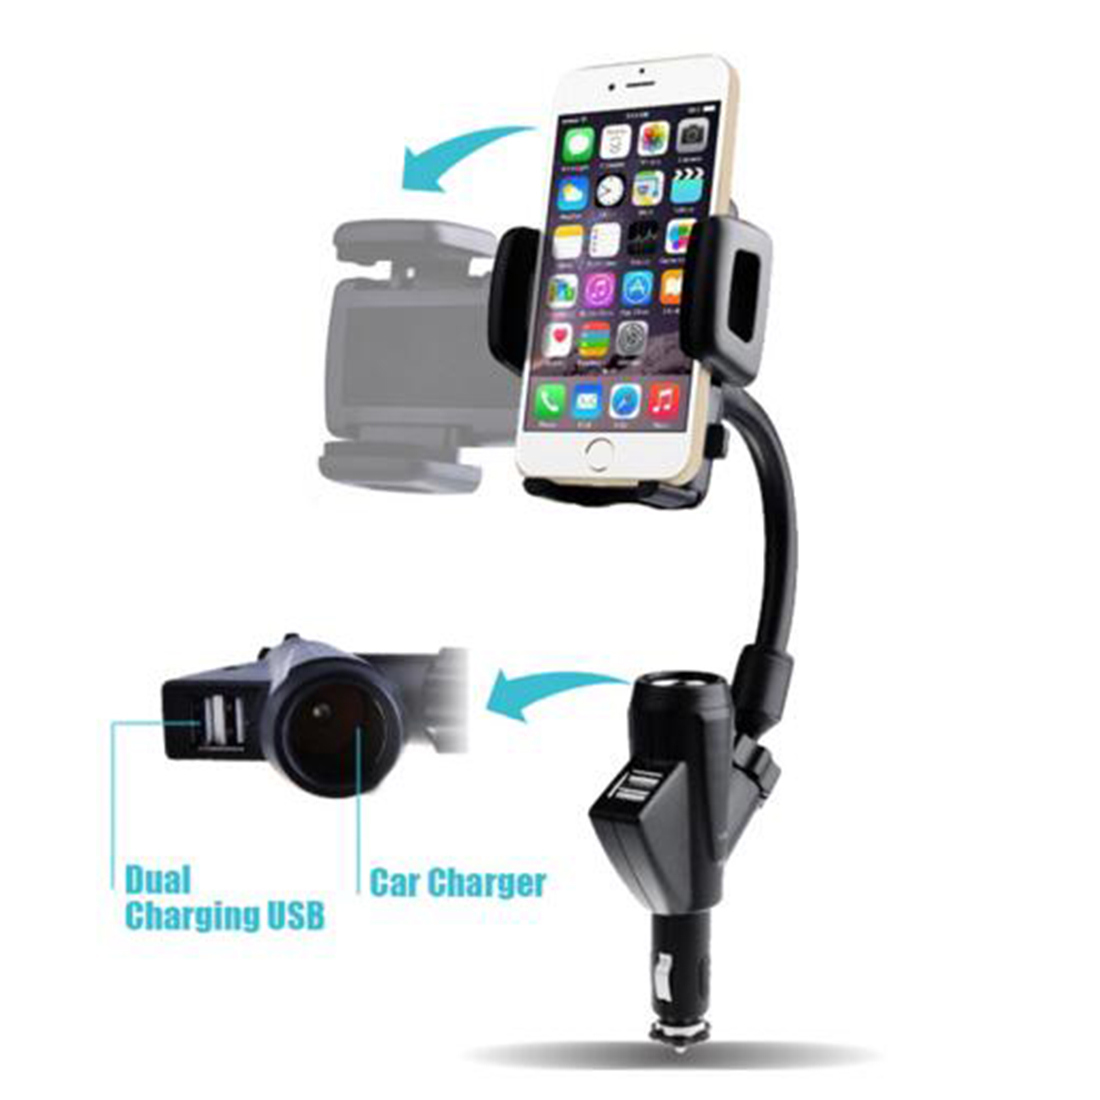 Dewtreetali Hot Sale Car Phone Holder Dual USB Cigarette Lighter Charging Mobile 360 Degree Rotating Mount Stand for iphone Sams